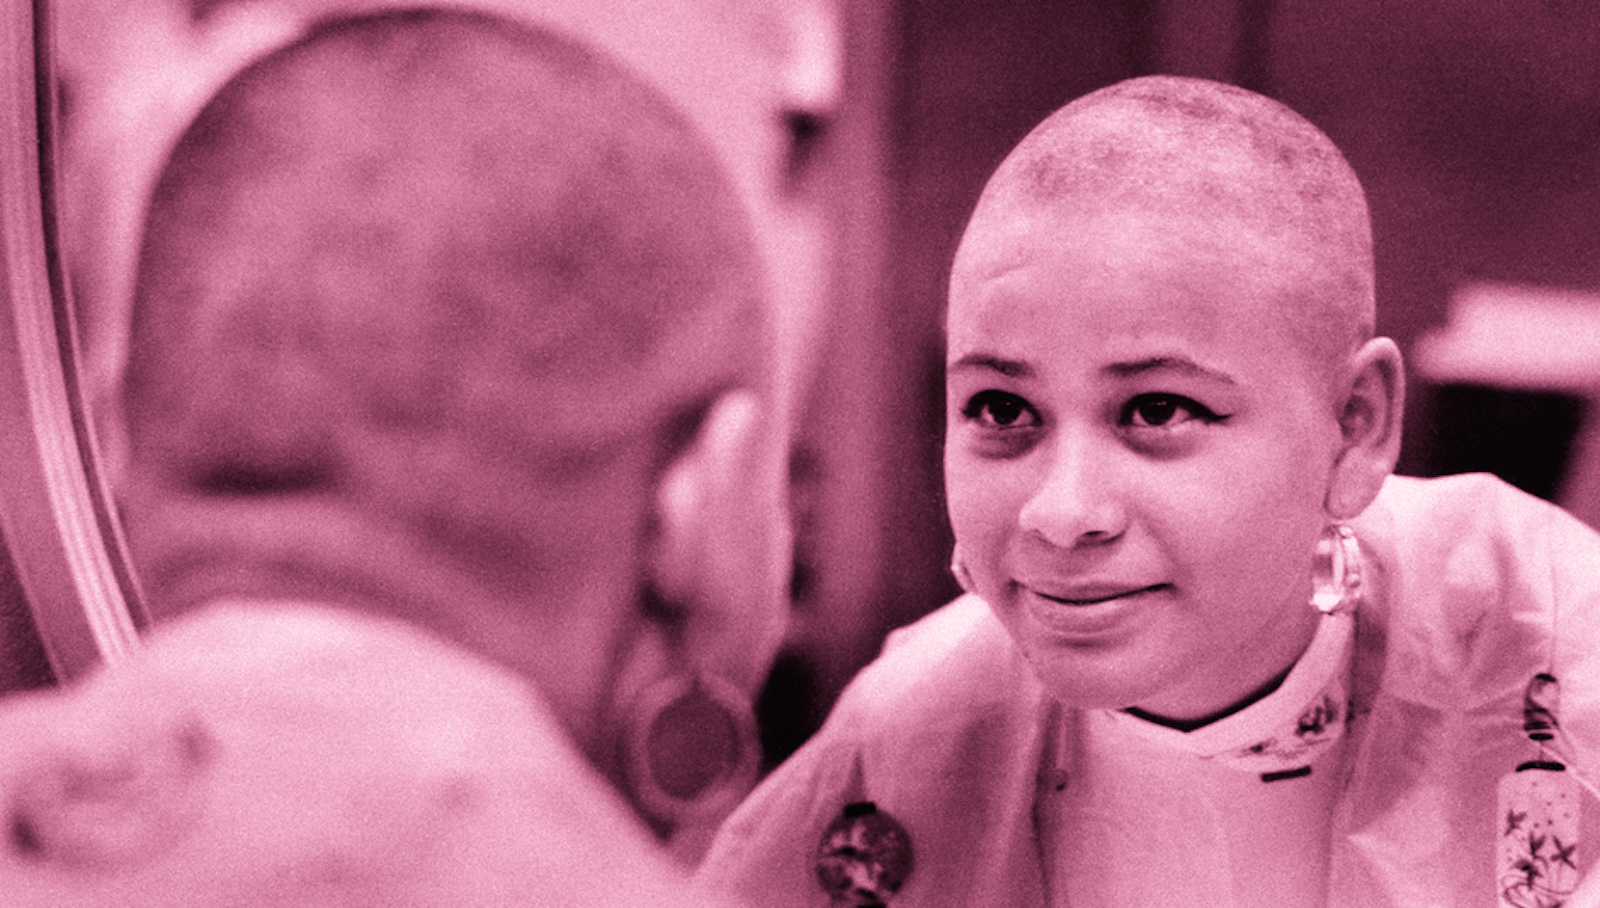 a woman with a shaved head looks in the mirror